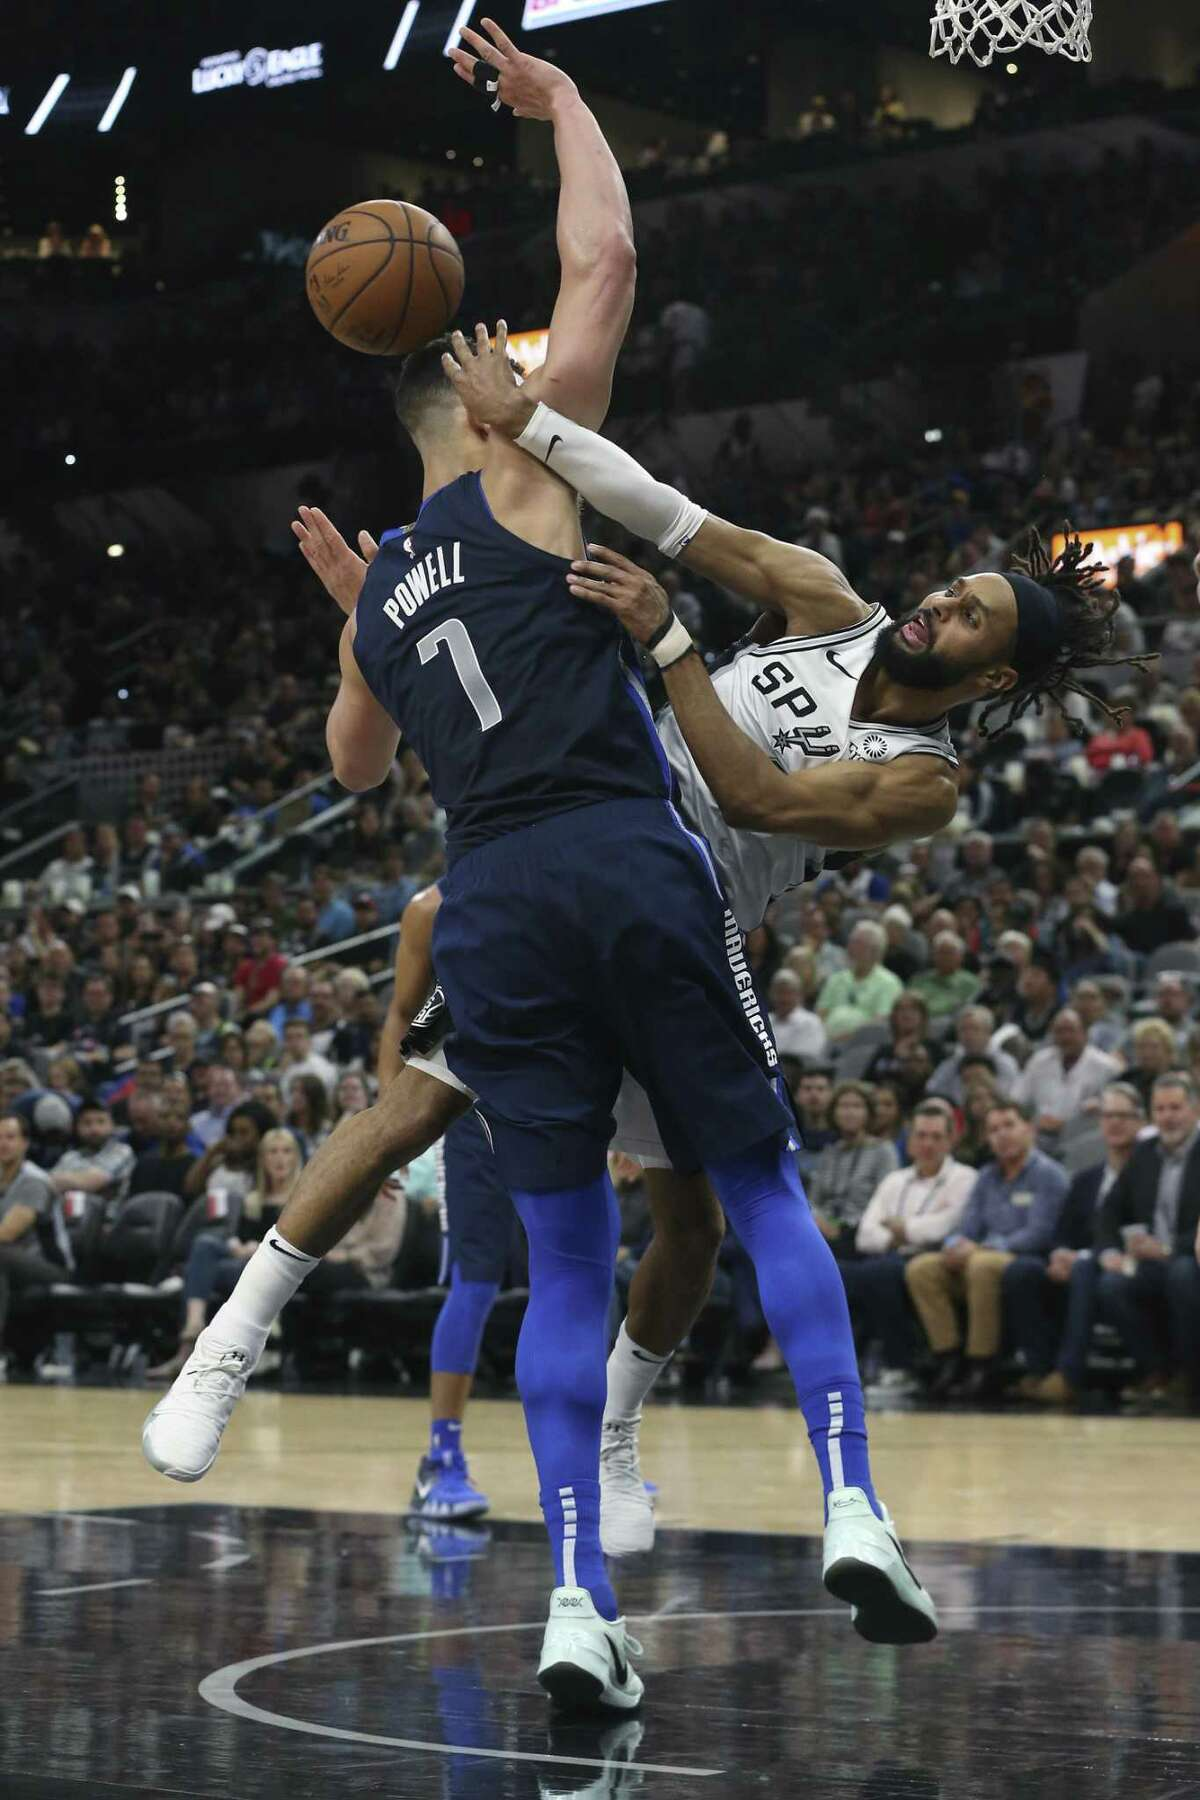 Dallas Mavericks' Dwight Powell trips San Antonio Spurs' Patty Mills as he passes the ball during the first half at the AT&T Center, Wednesday, April 10, 2019.